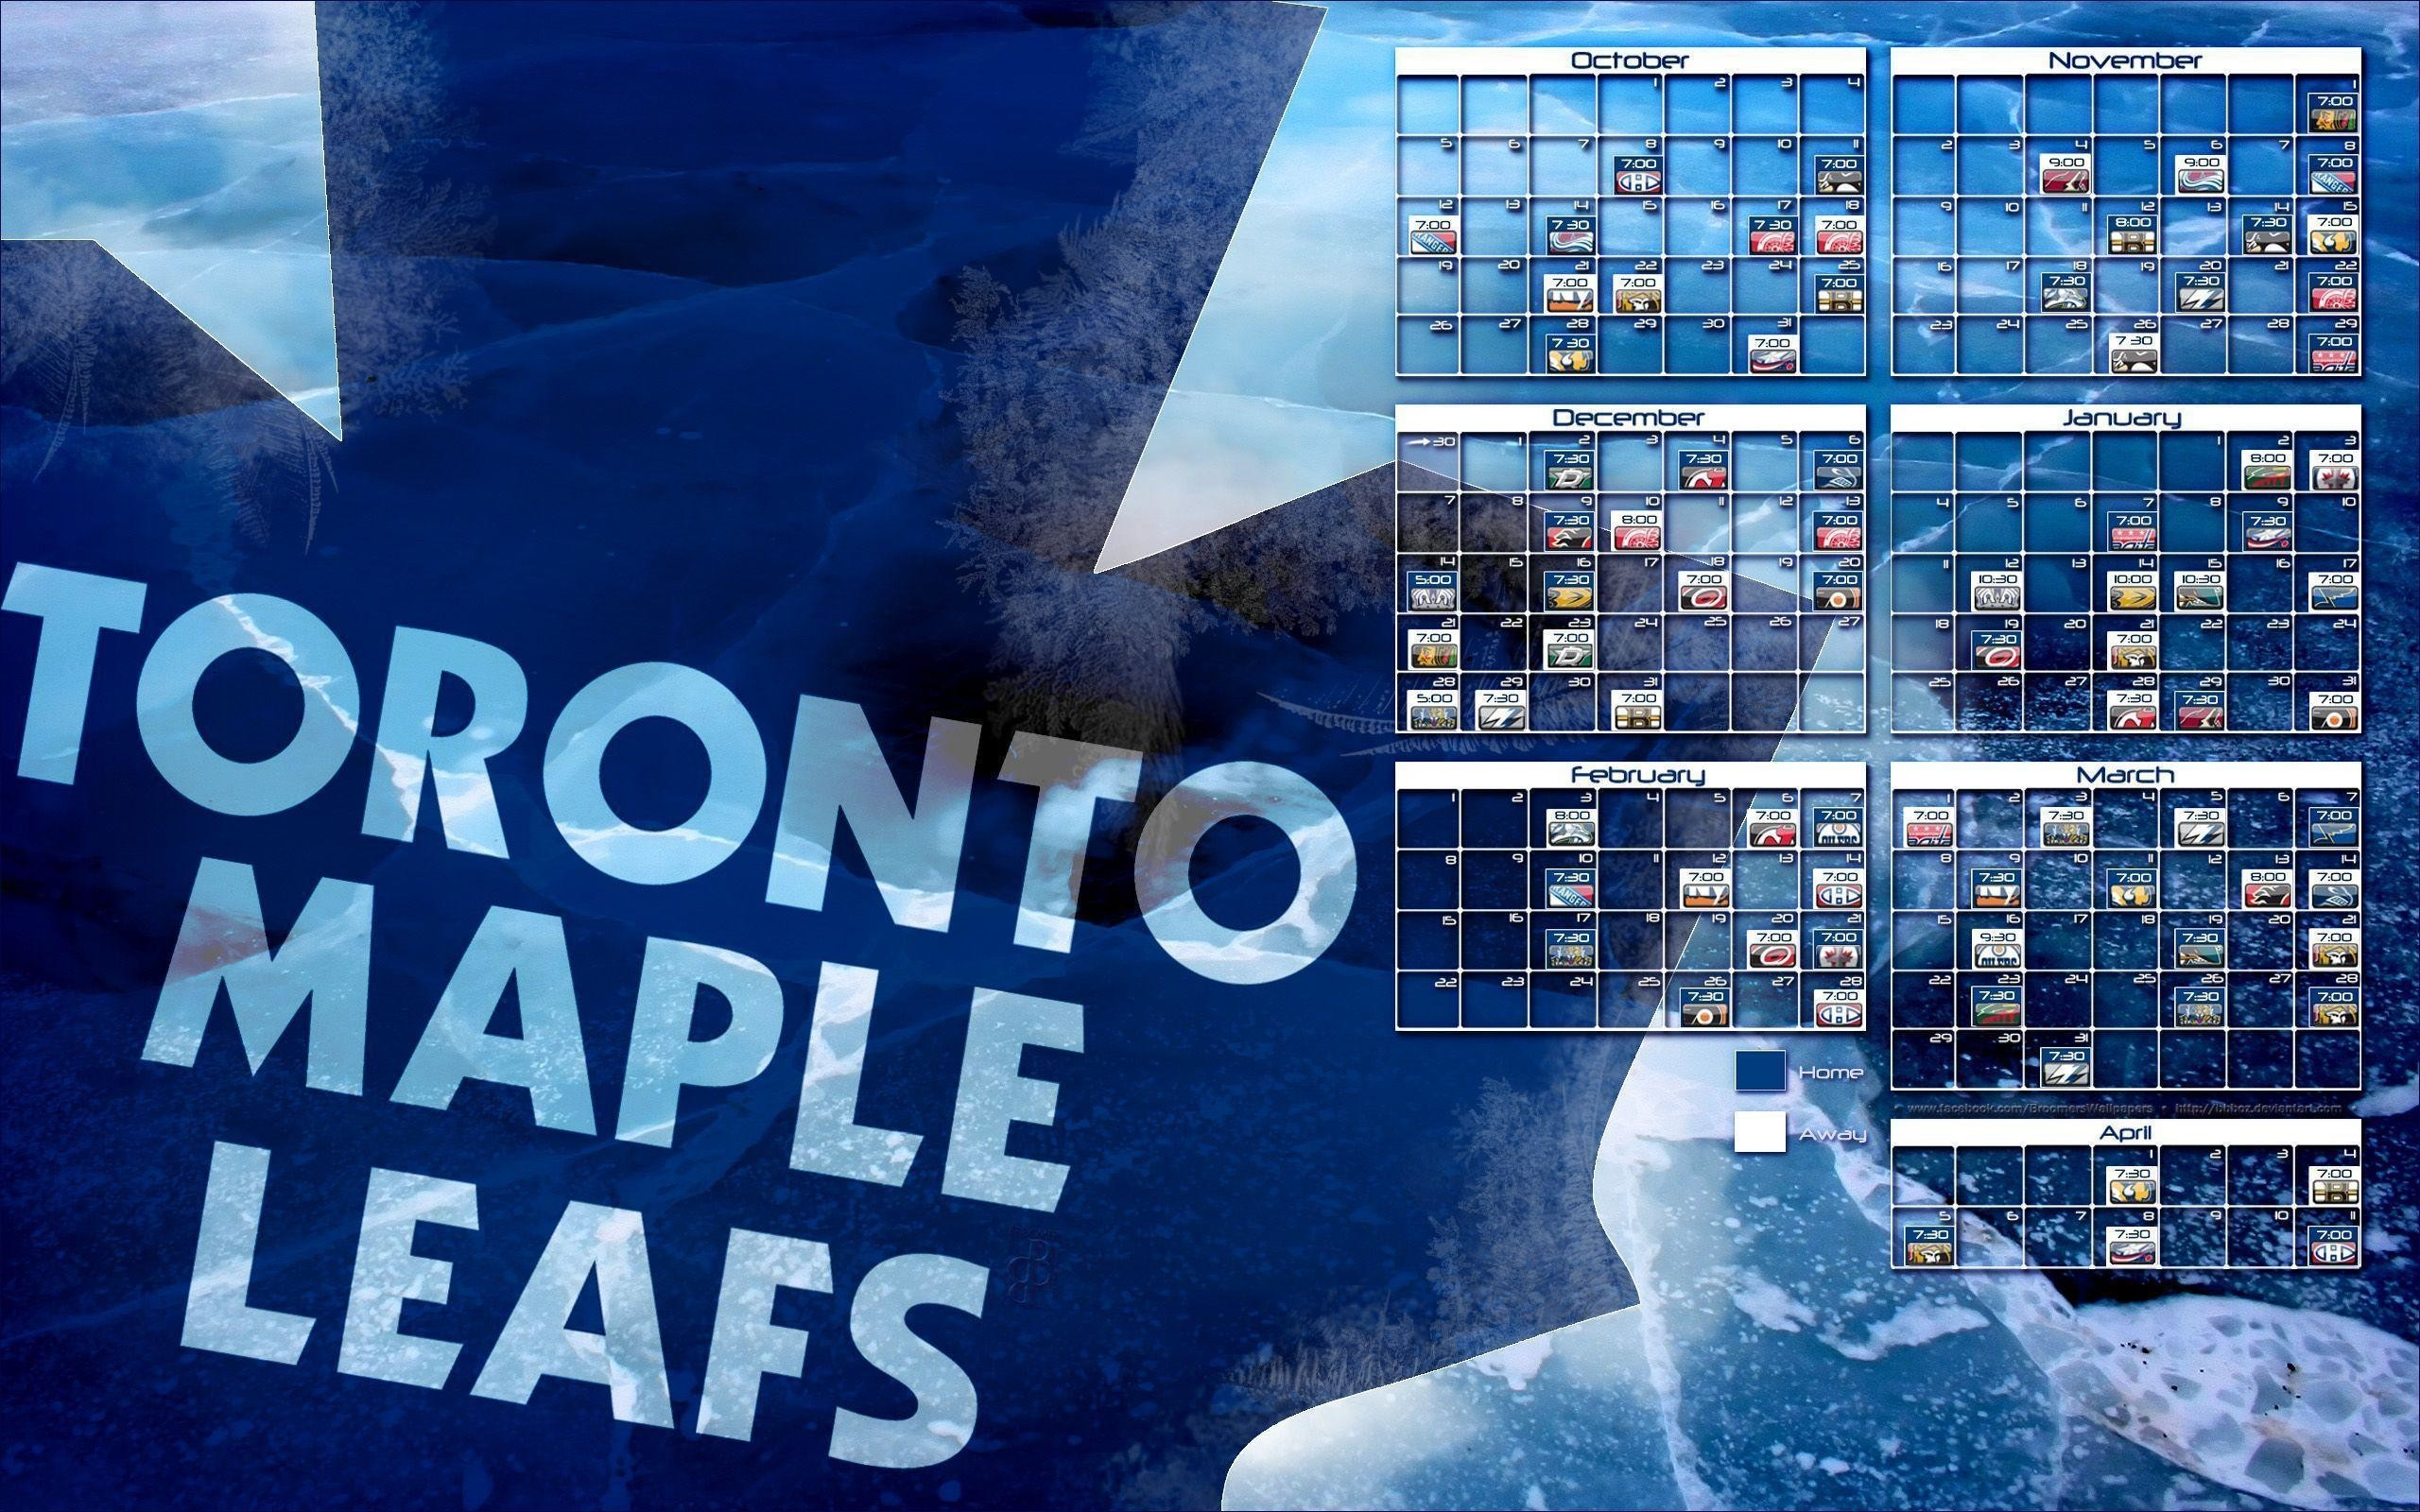 2560x1600 2014-2015 Toronto Maple Leafs schedule wallpaper by bbboz on .